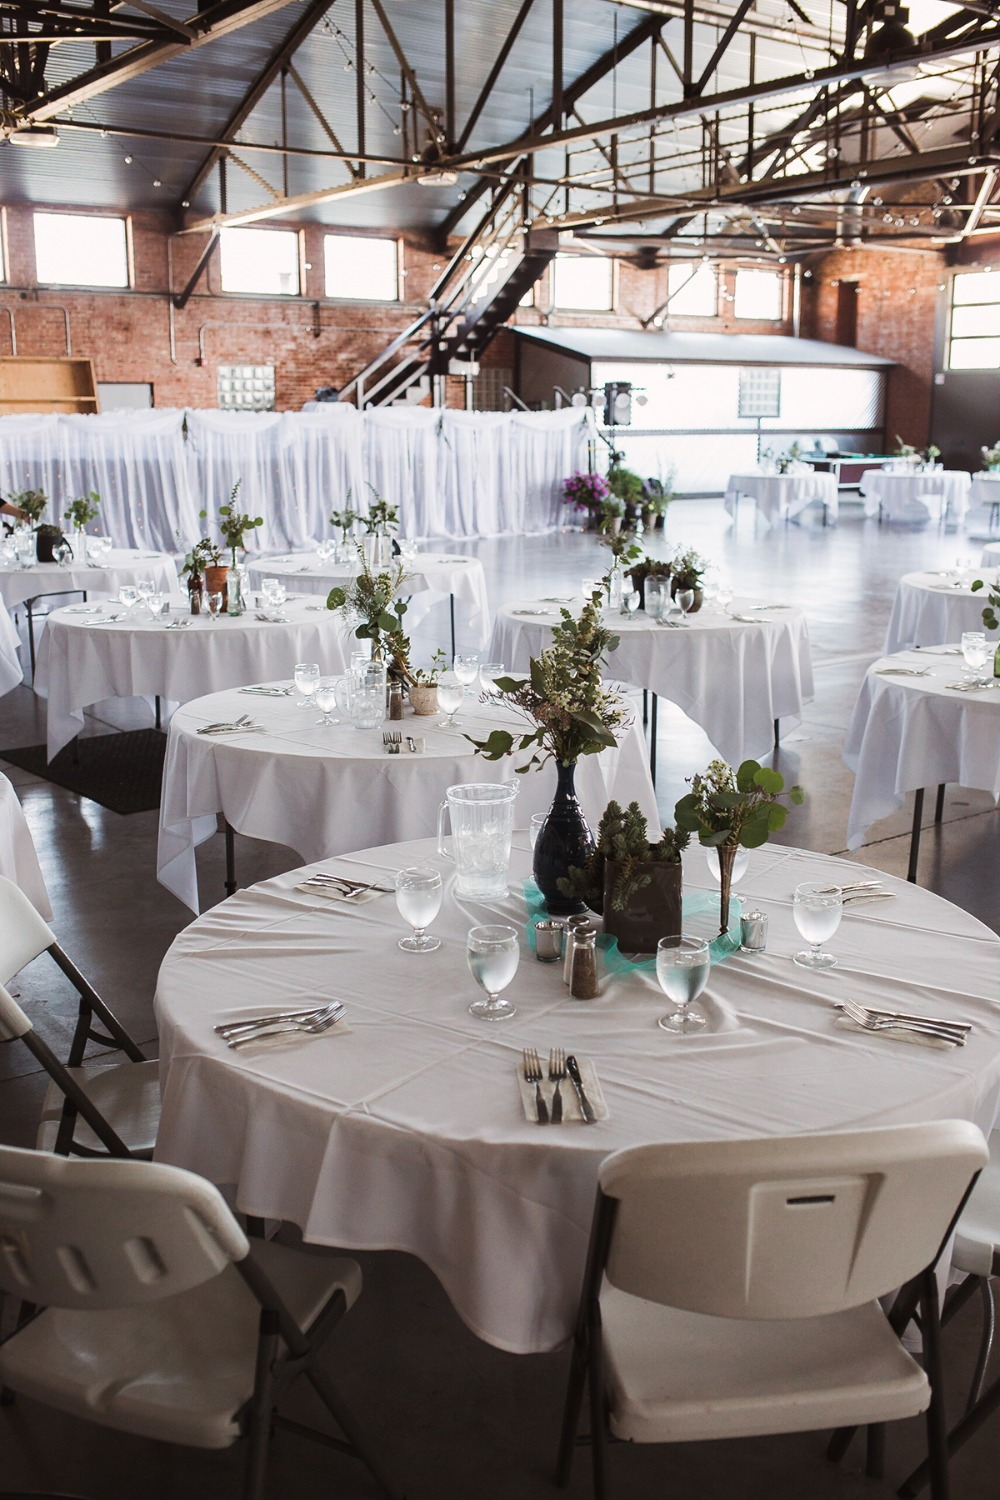 wedding reception in an airplane hanger